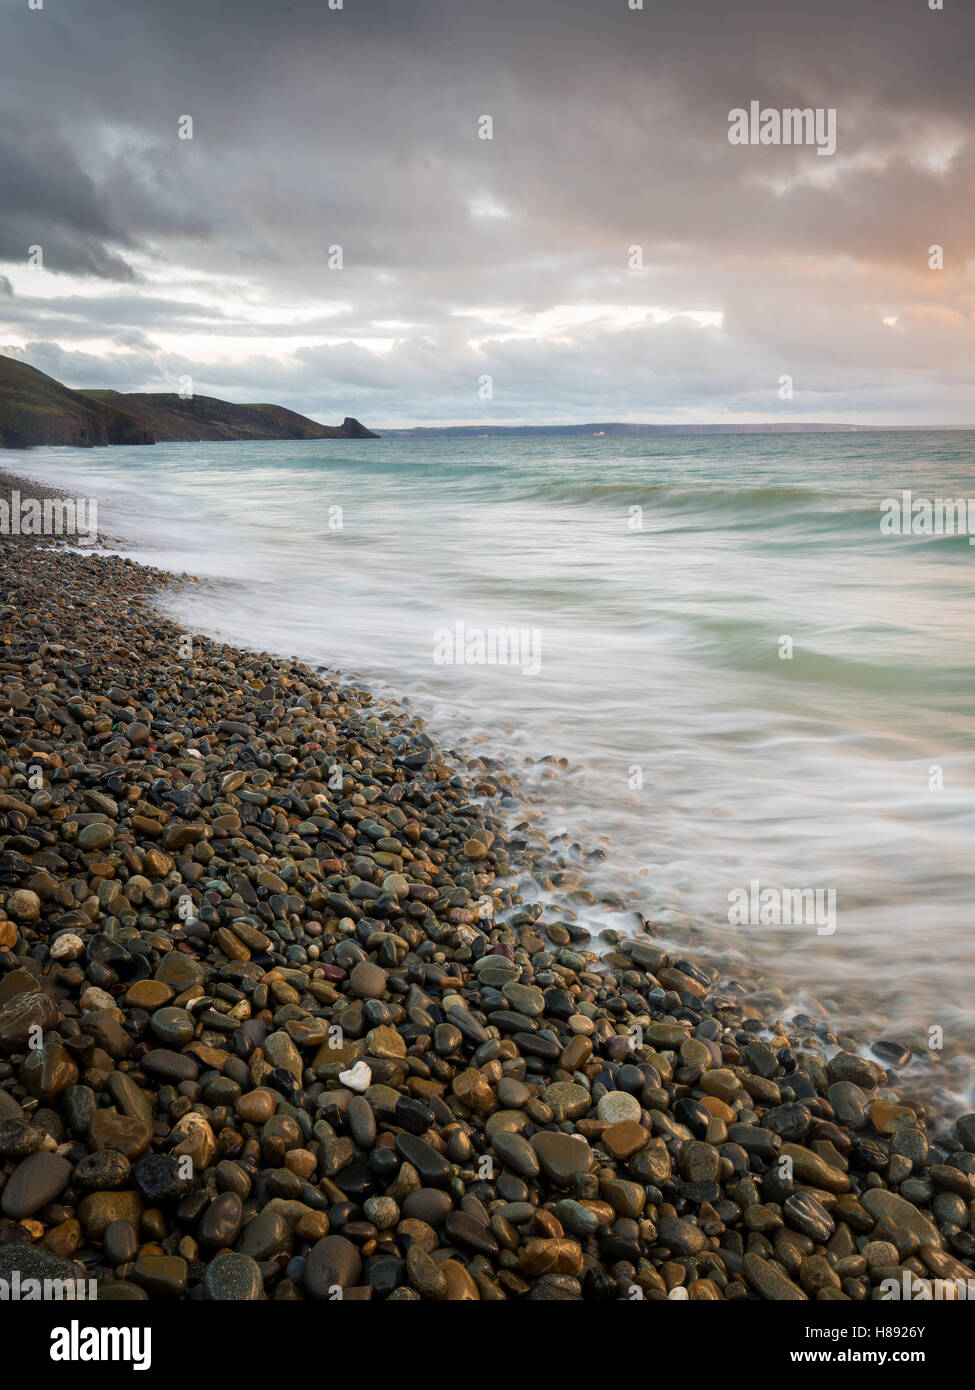 Newgale beach and waves across the pebbles, Pembrokeshire Coast National Park, Wales, UK - Stock Image